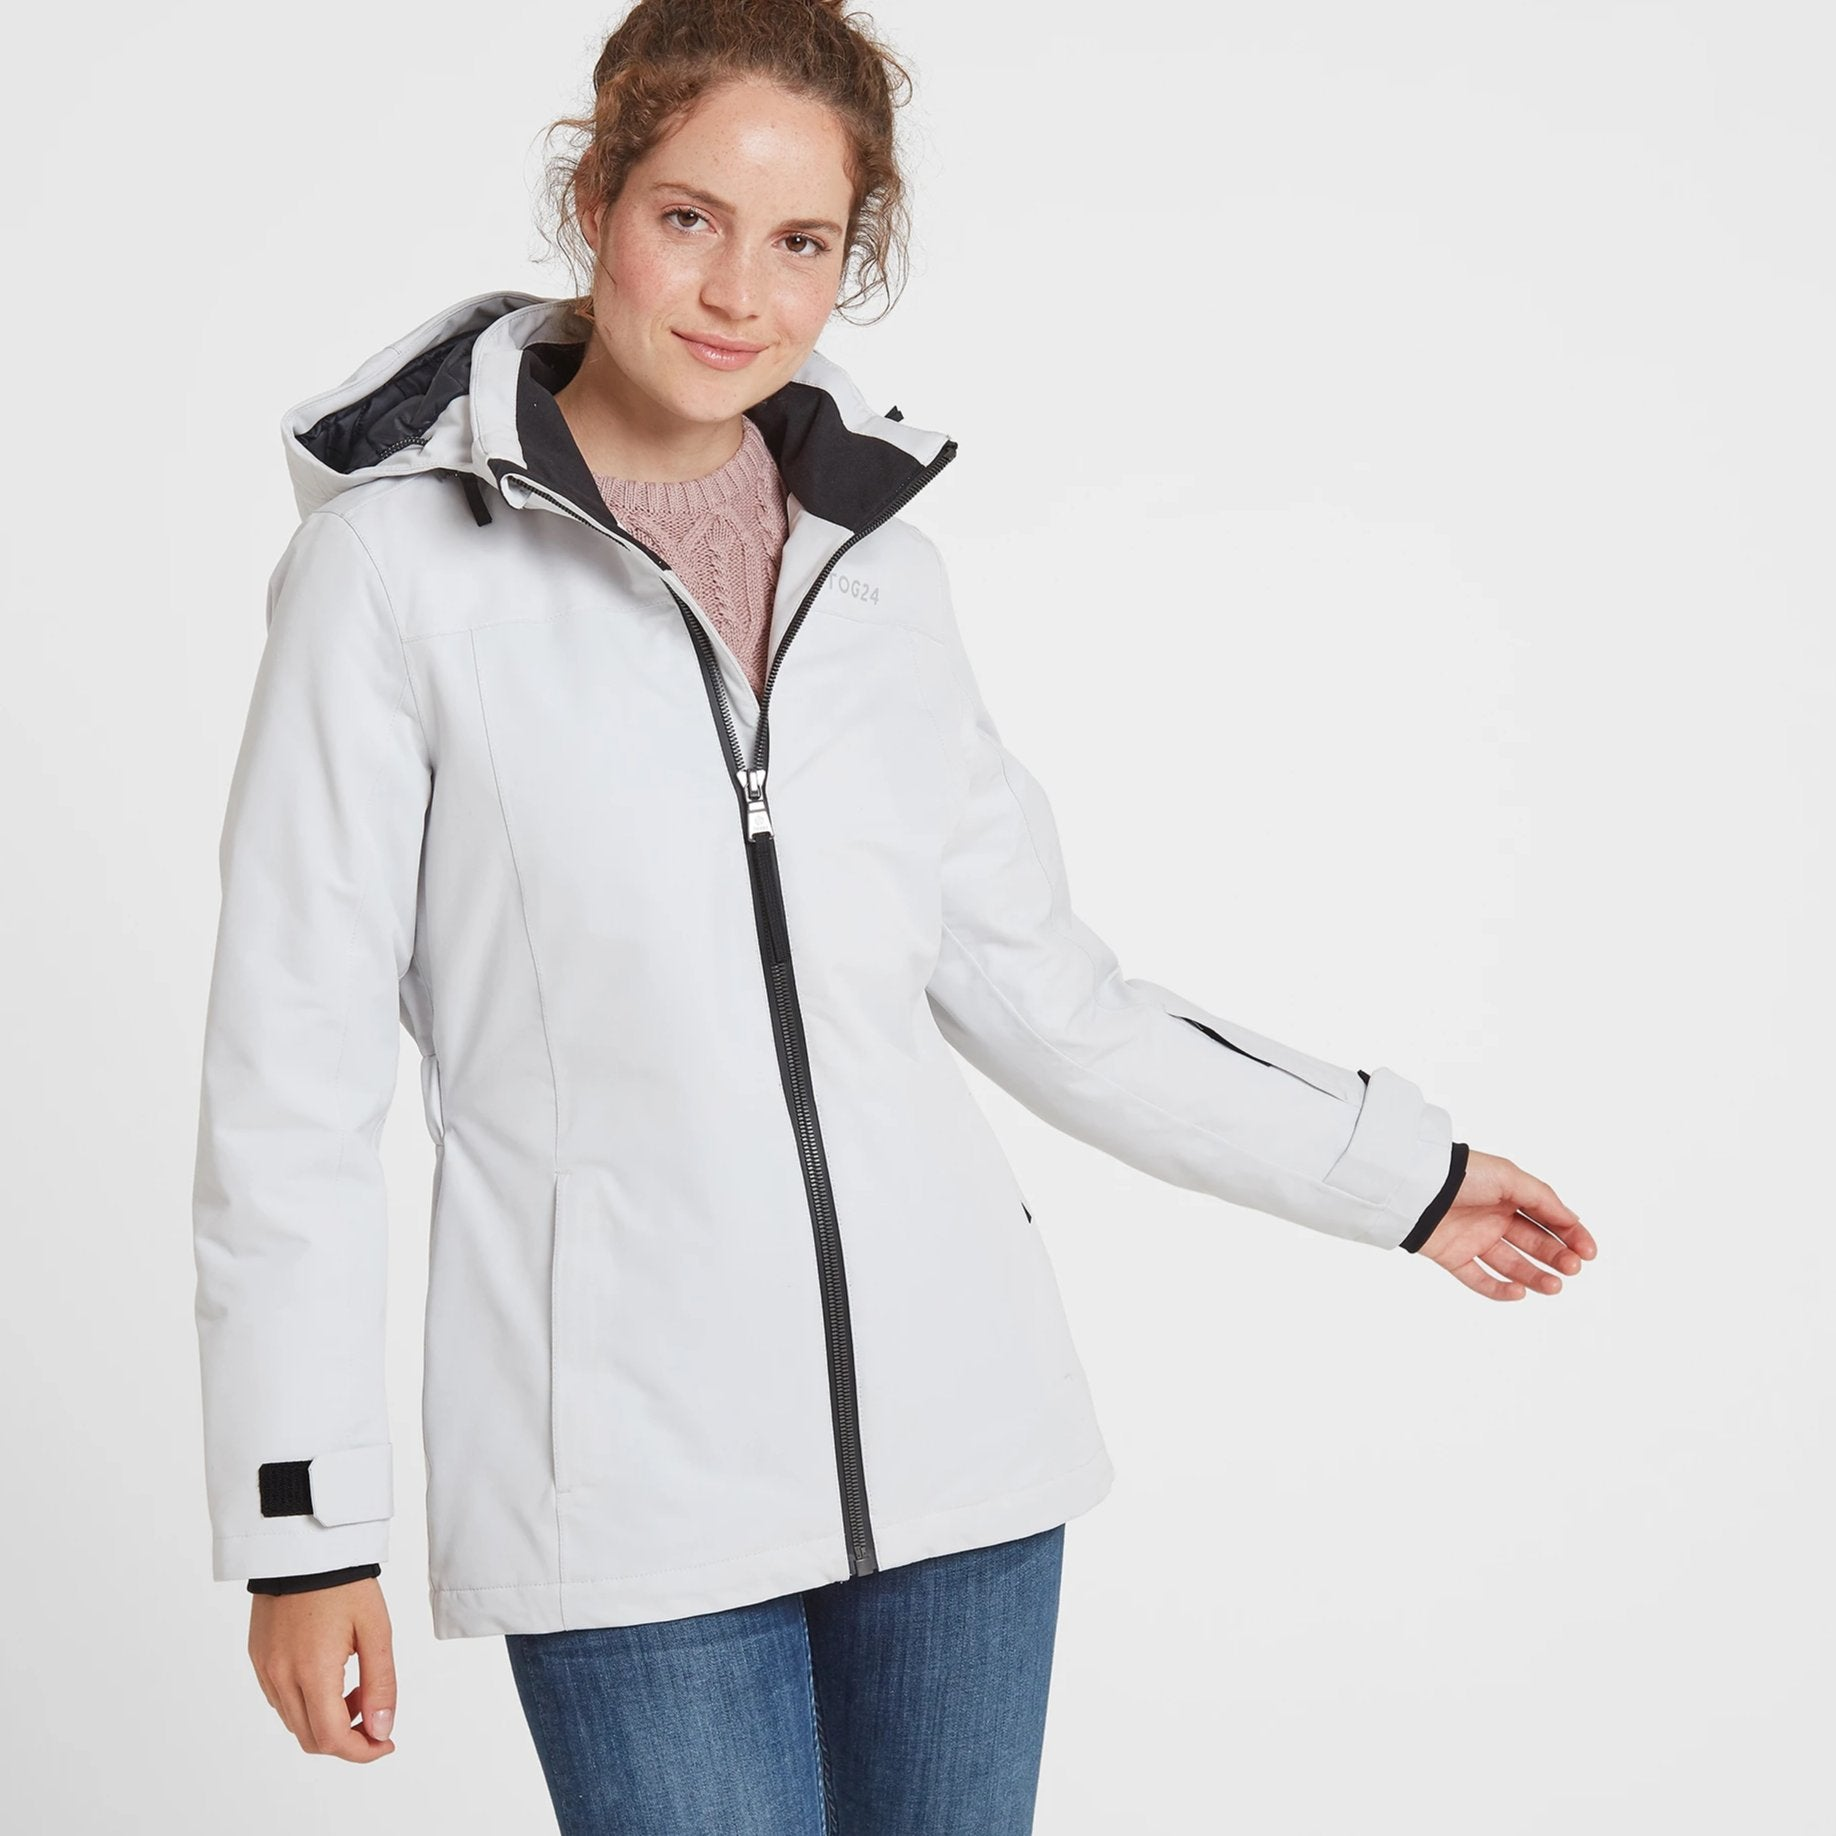 Cawood Womens Winter Jacket - Ice Grey